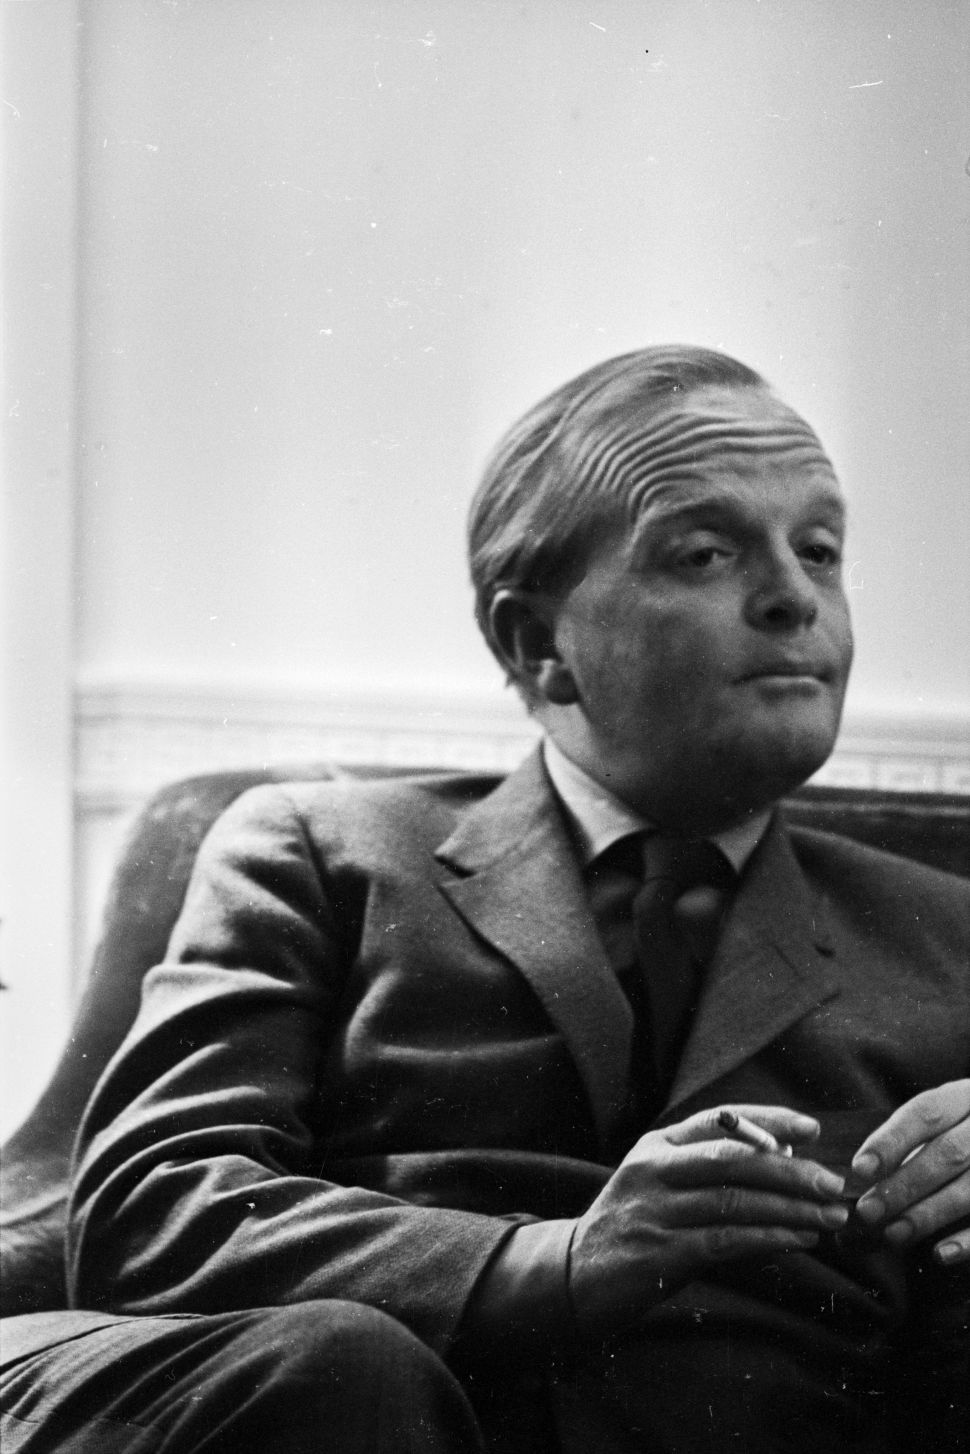 Truman Capote's Ashes Up for Auction, Is 'Hacktivism' Art? … And More